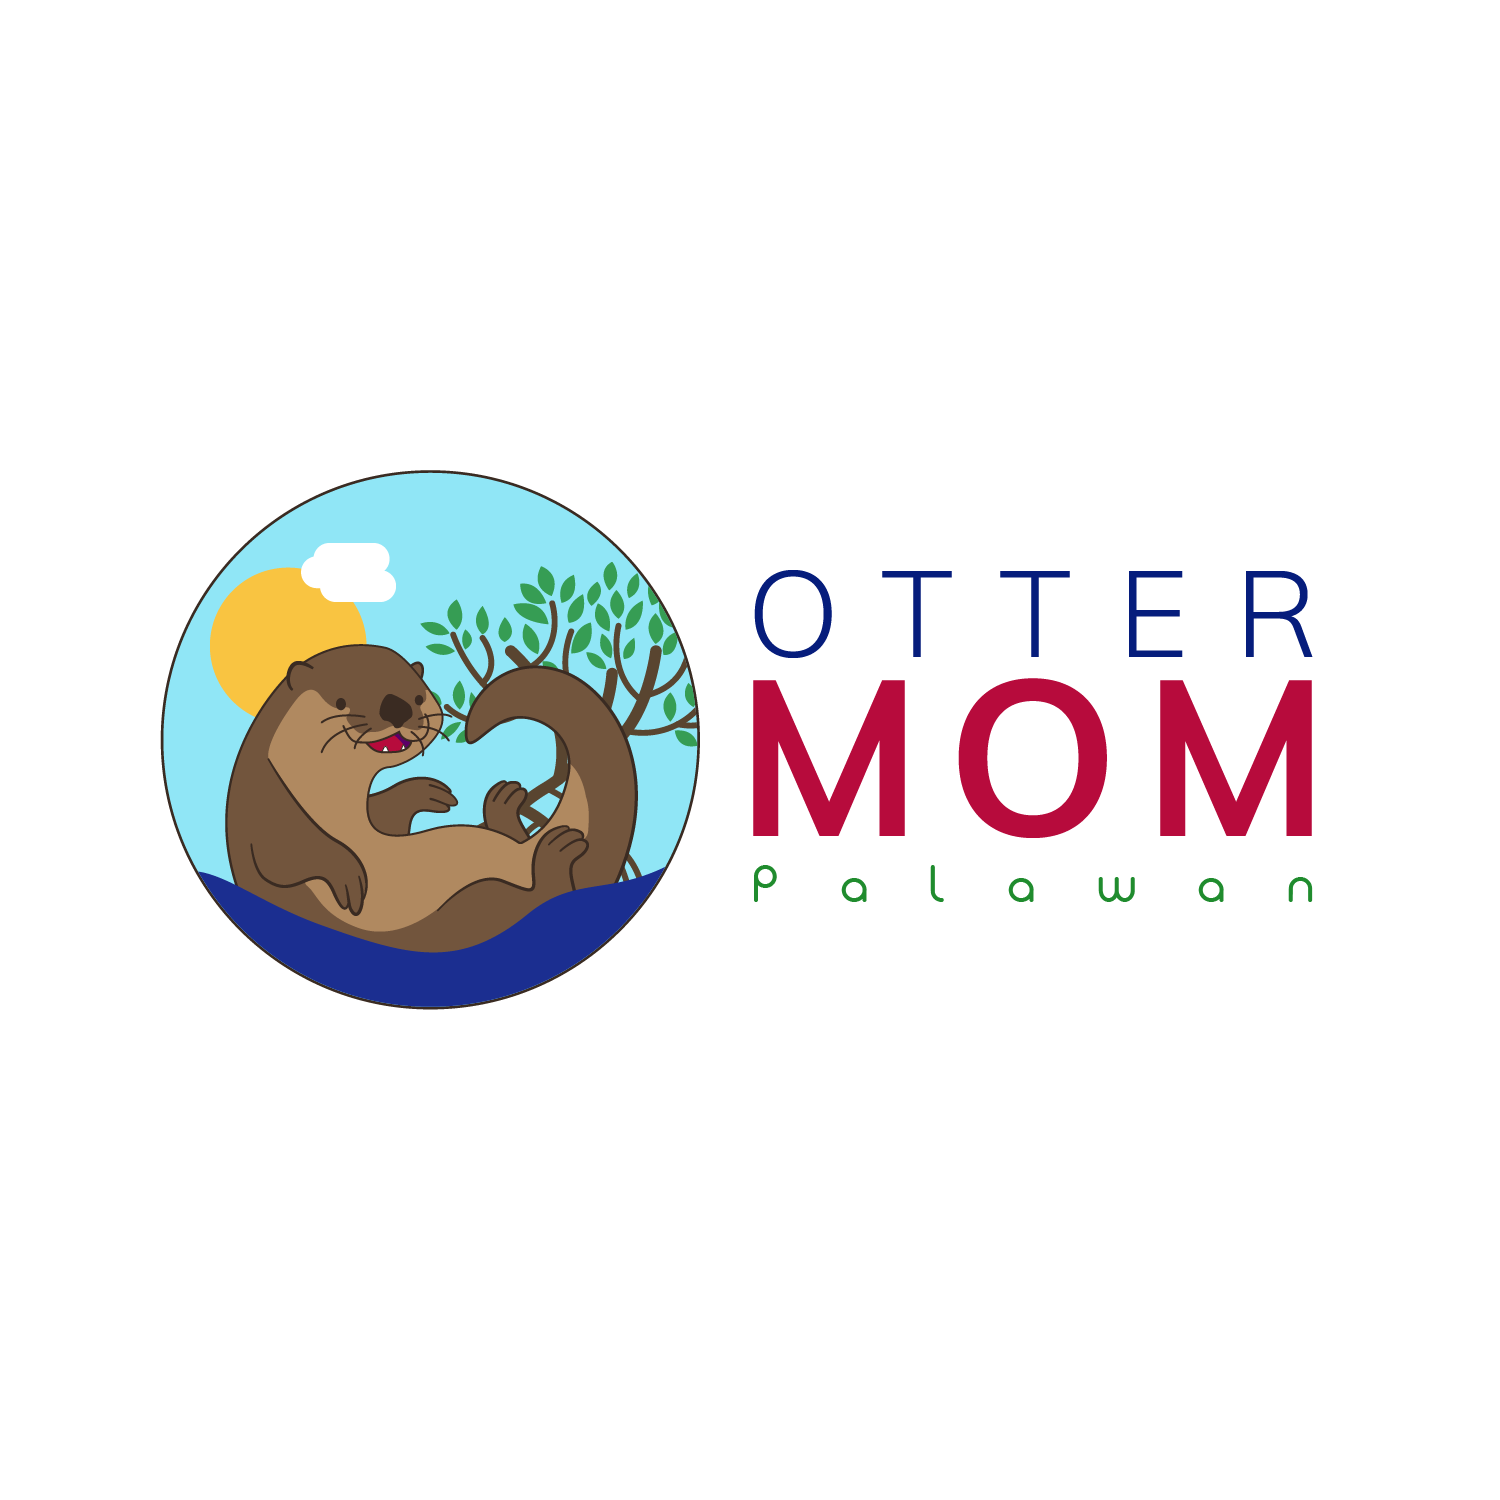 Otters of Palawan